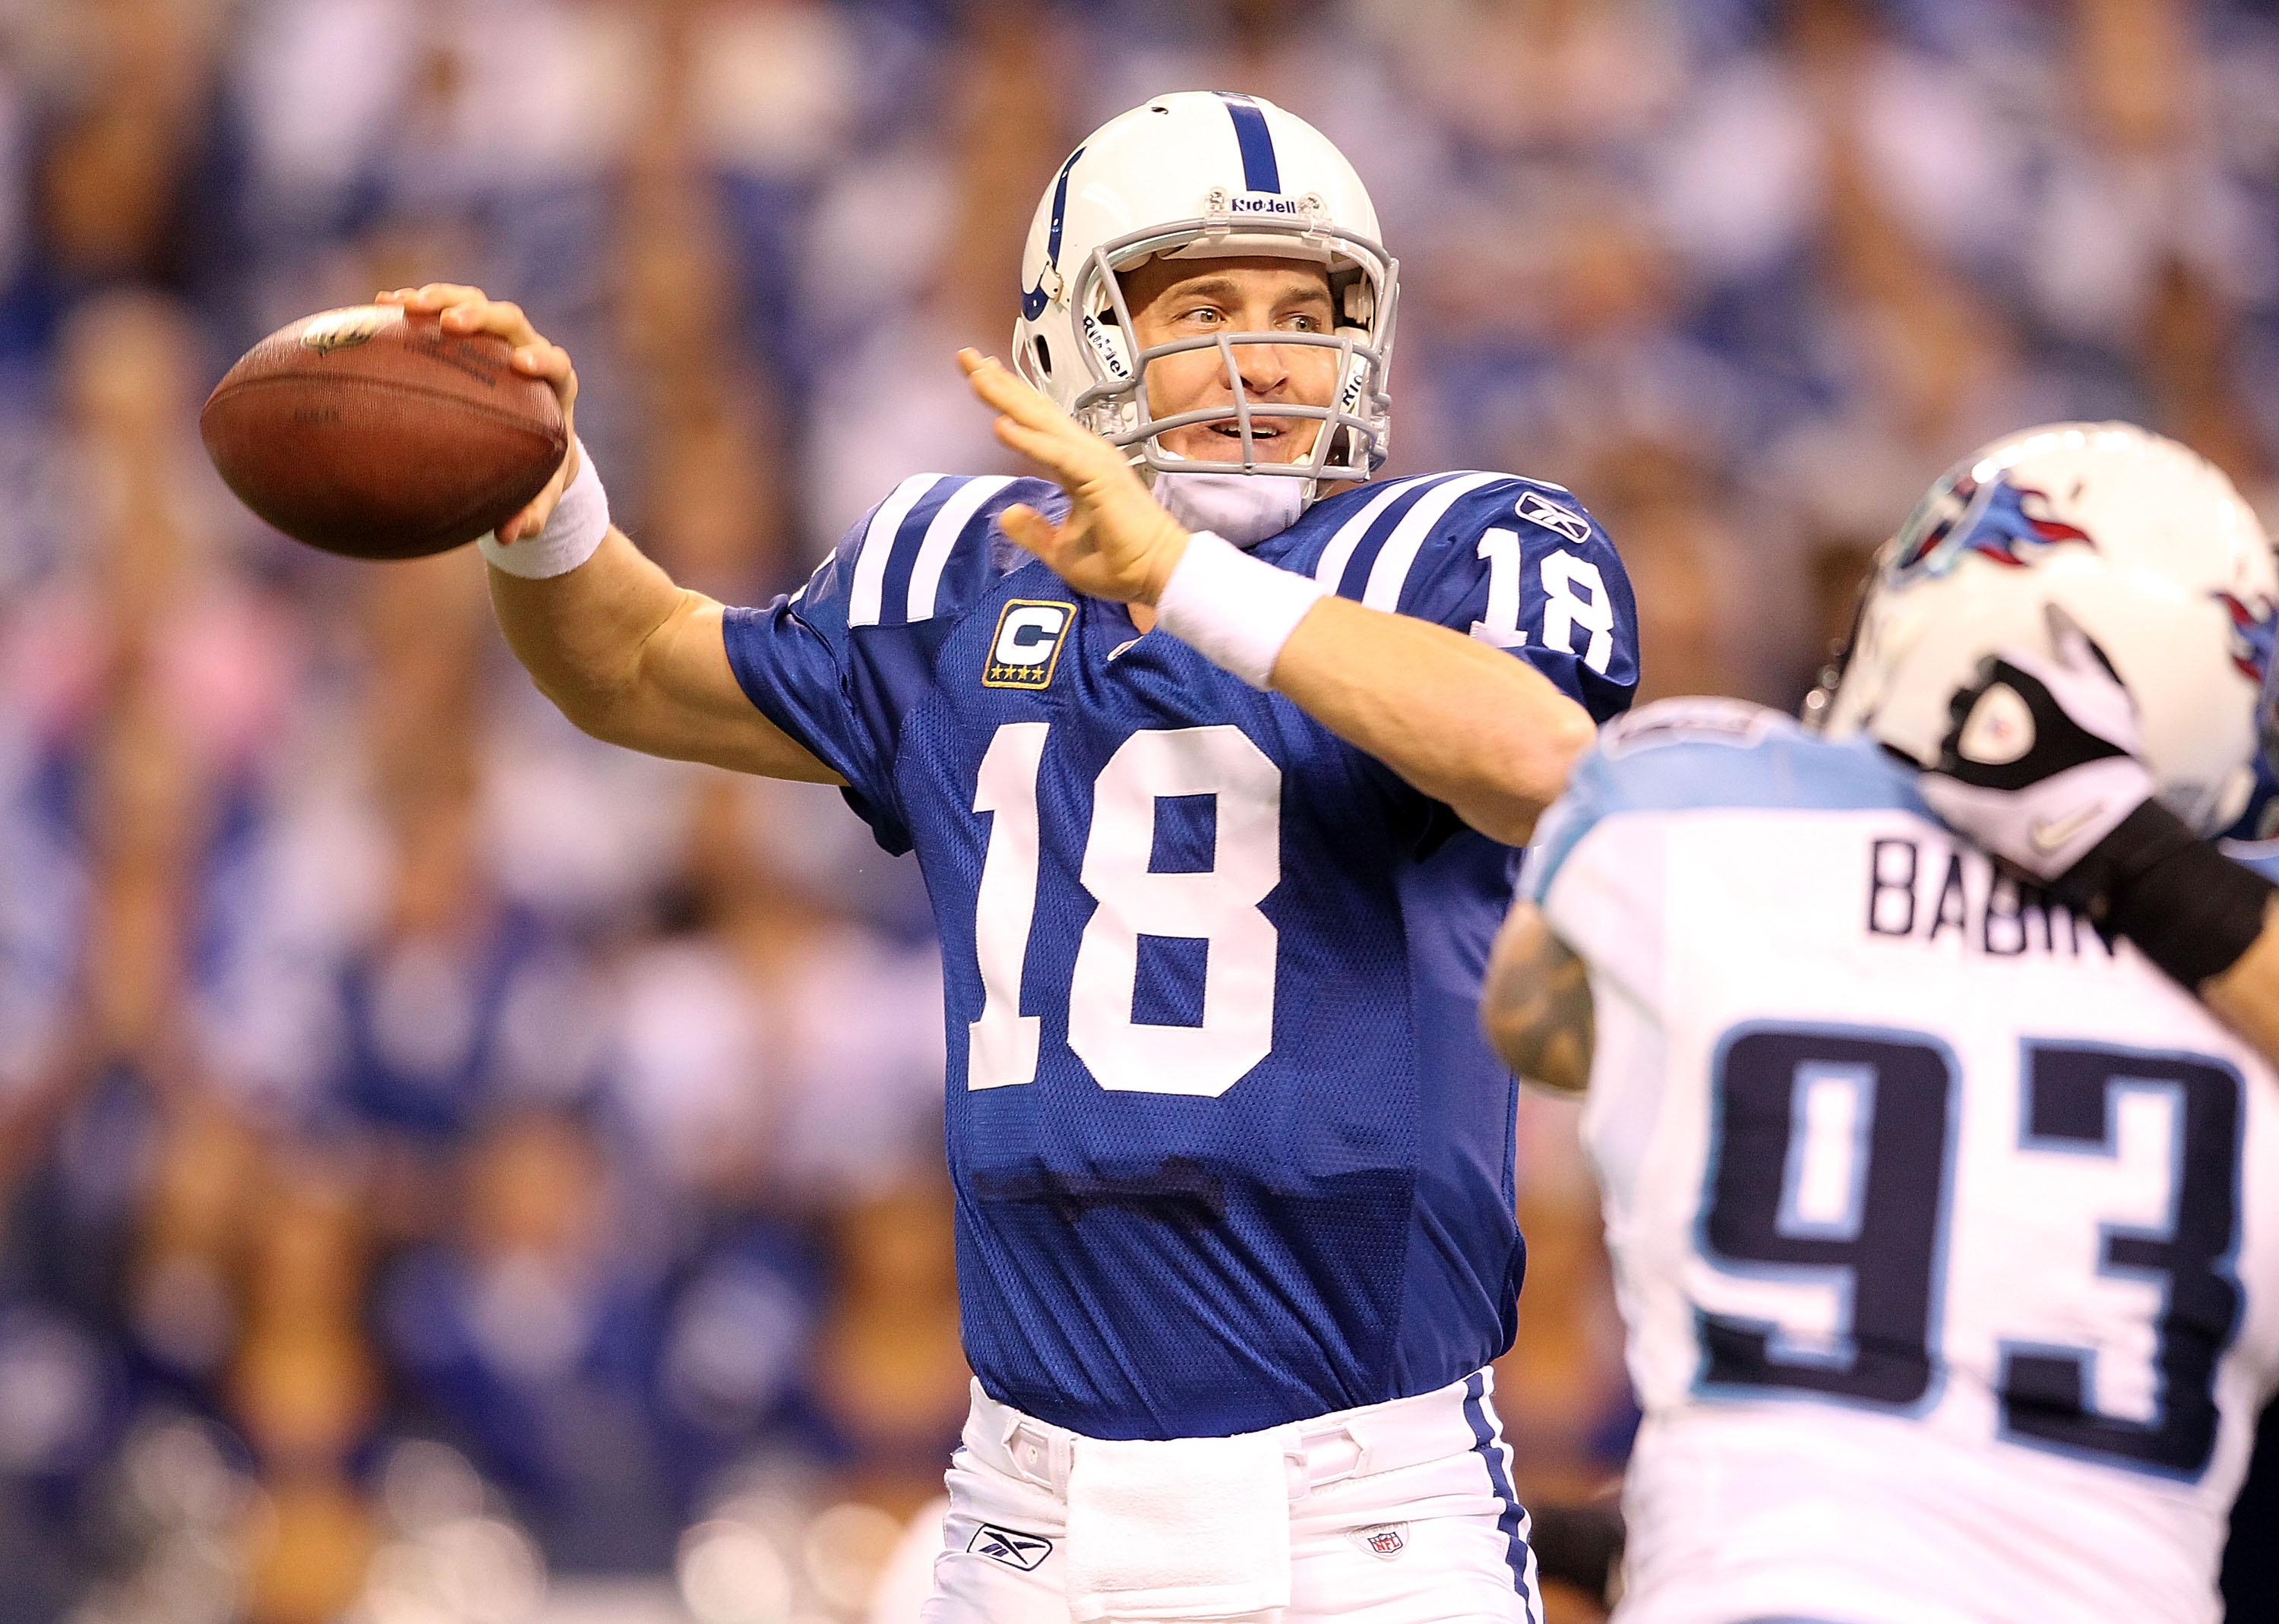 INDIANAPOLIS - JANUARY 02:  Peyton Manning #18 of the Indianapolis Colts throws a pass during NFL game against the Tennessee Titans at Lucas Oil Stadium on January 2, 2011 in Indianapolis, Indiana.  (Photo by Andy Lyons/Getty Images)